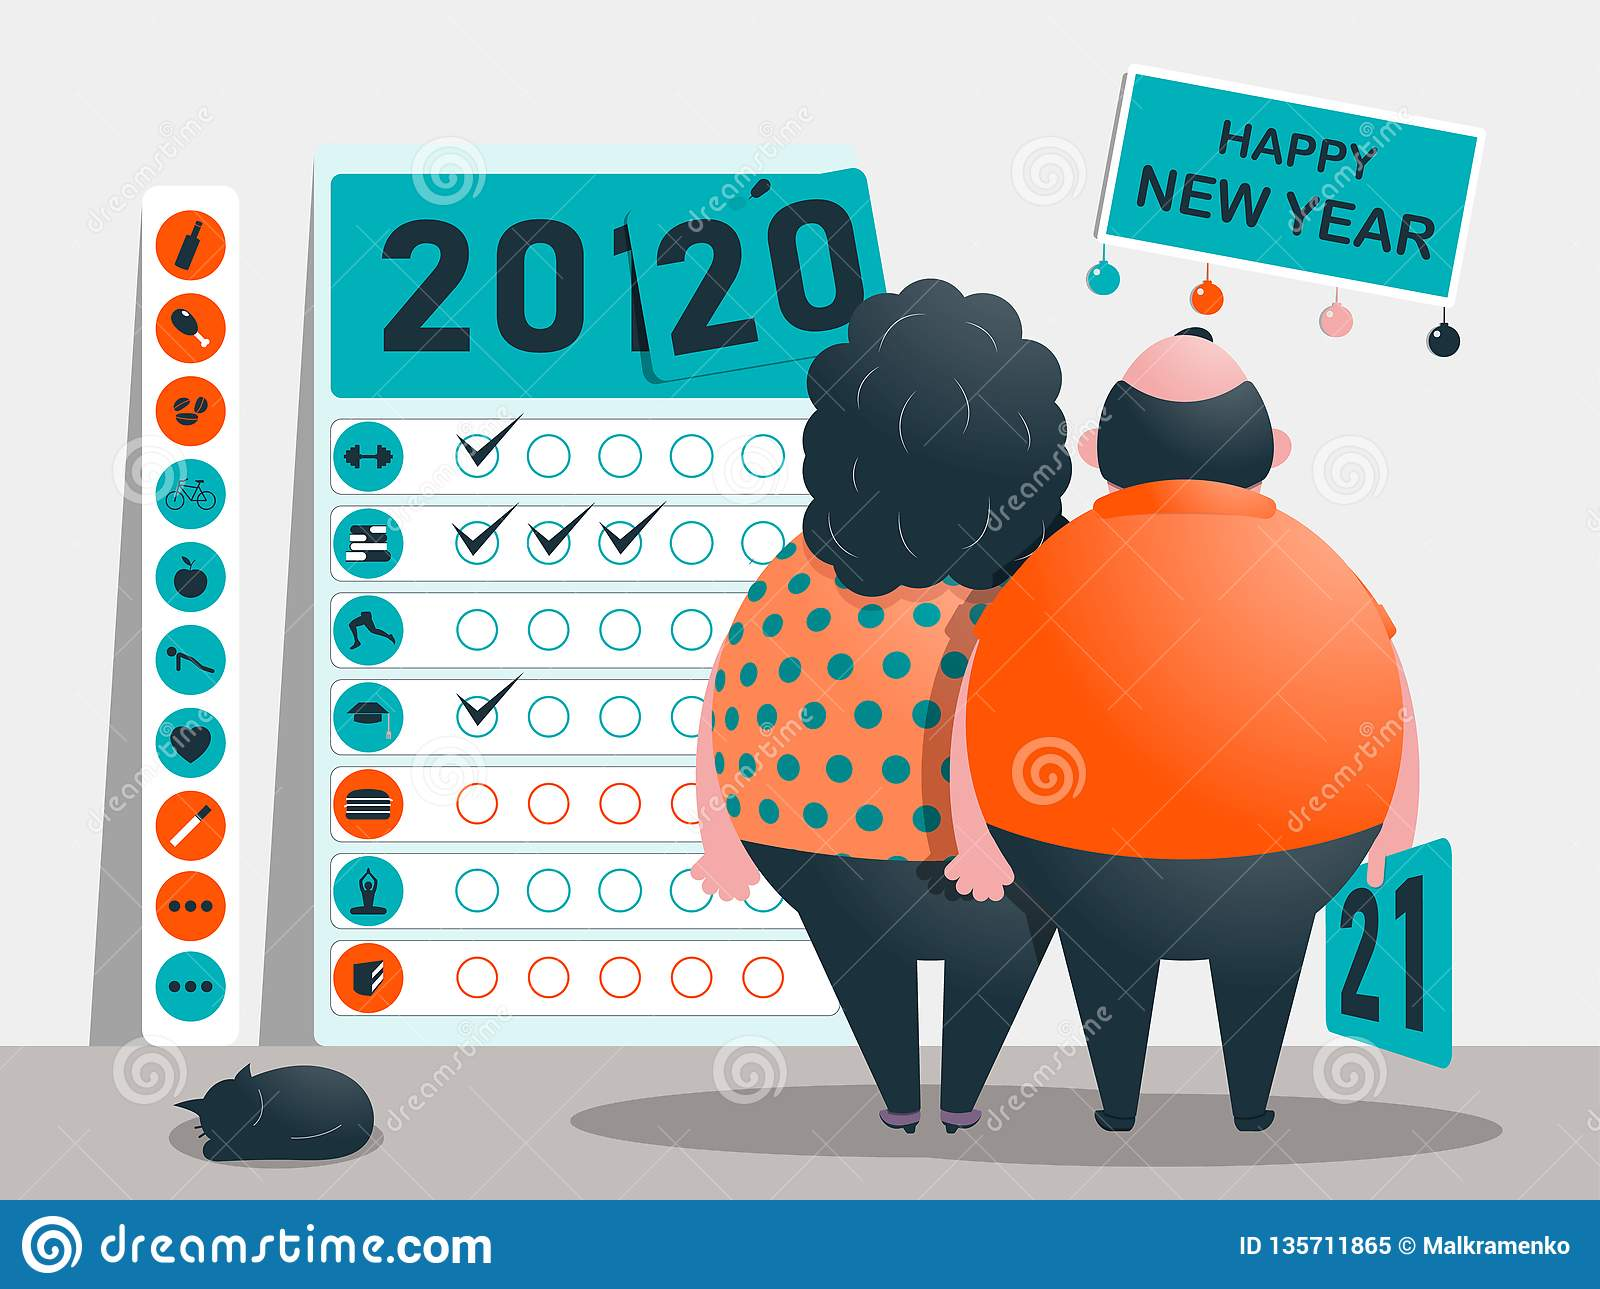 The objectives, plan and goals for the years 2020 - 2021. Calendar of useful and bad habits and addictions. Funny fat characters.